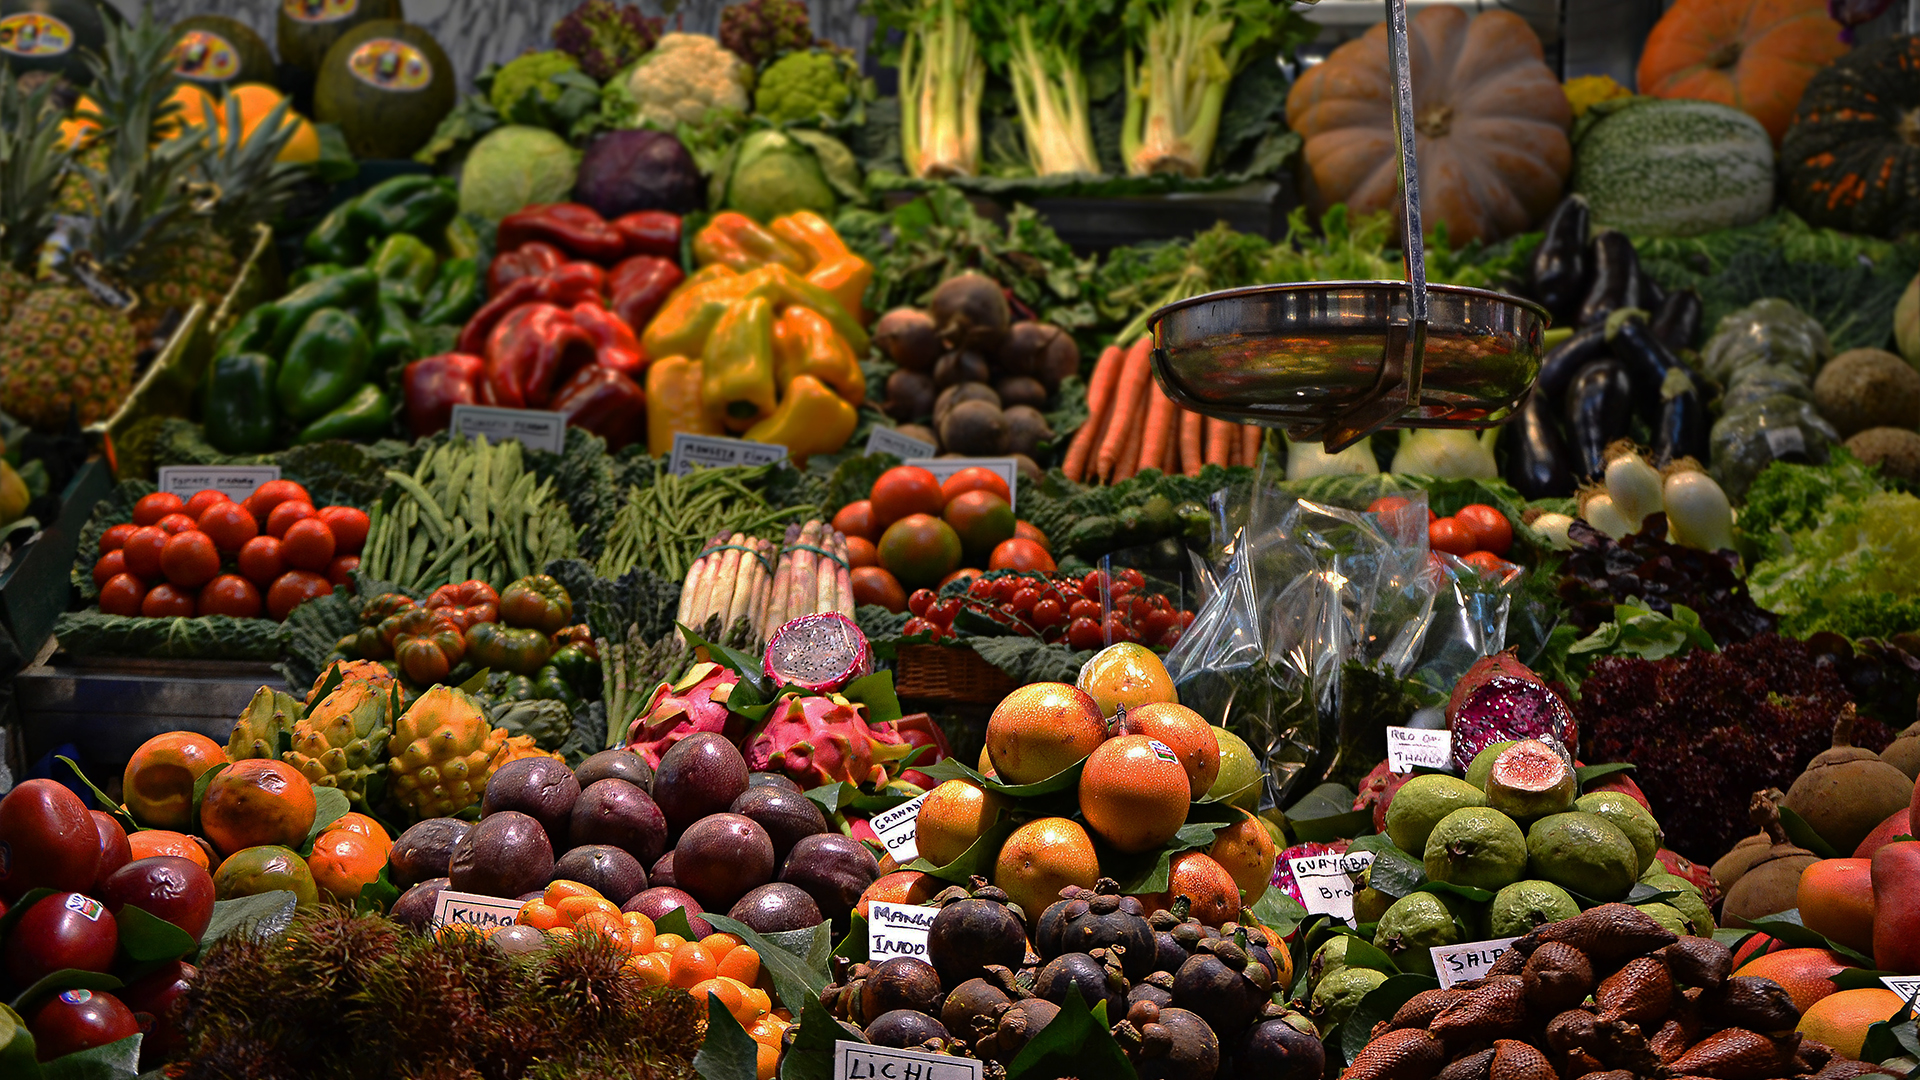 Dirty Dozen Fruits and Vegetables – What to Buy Organic vs Non-Organic